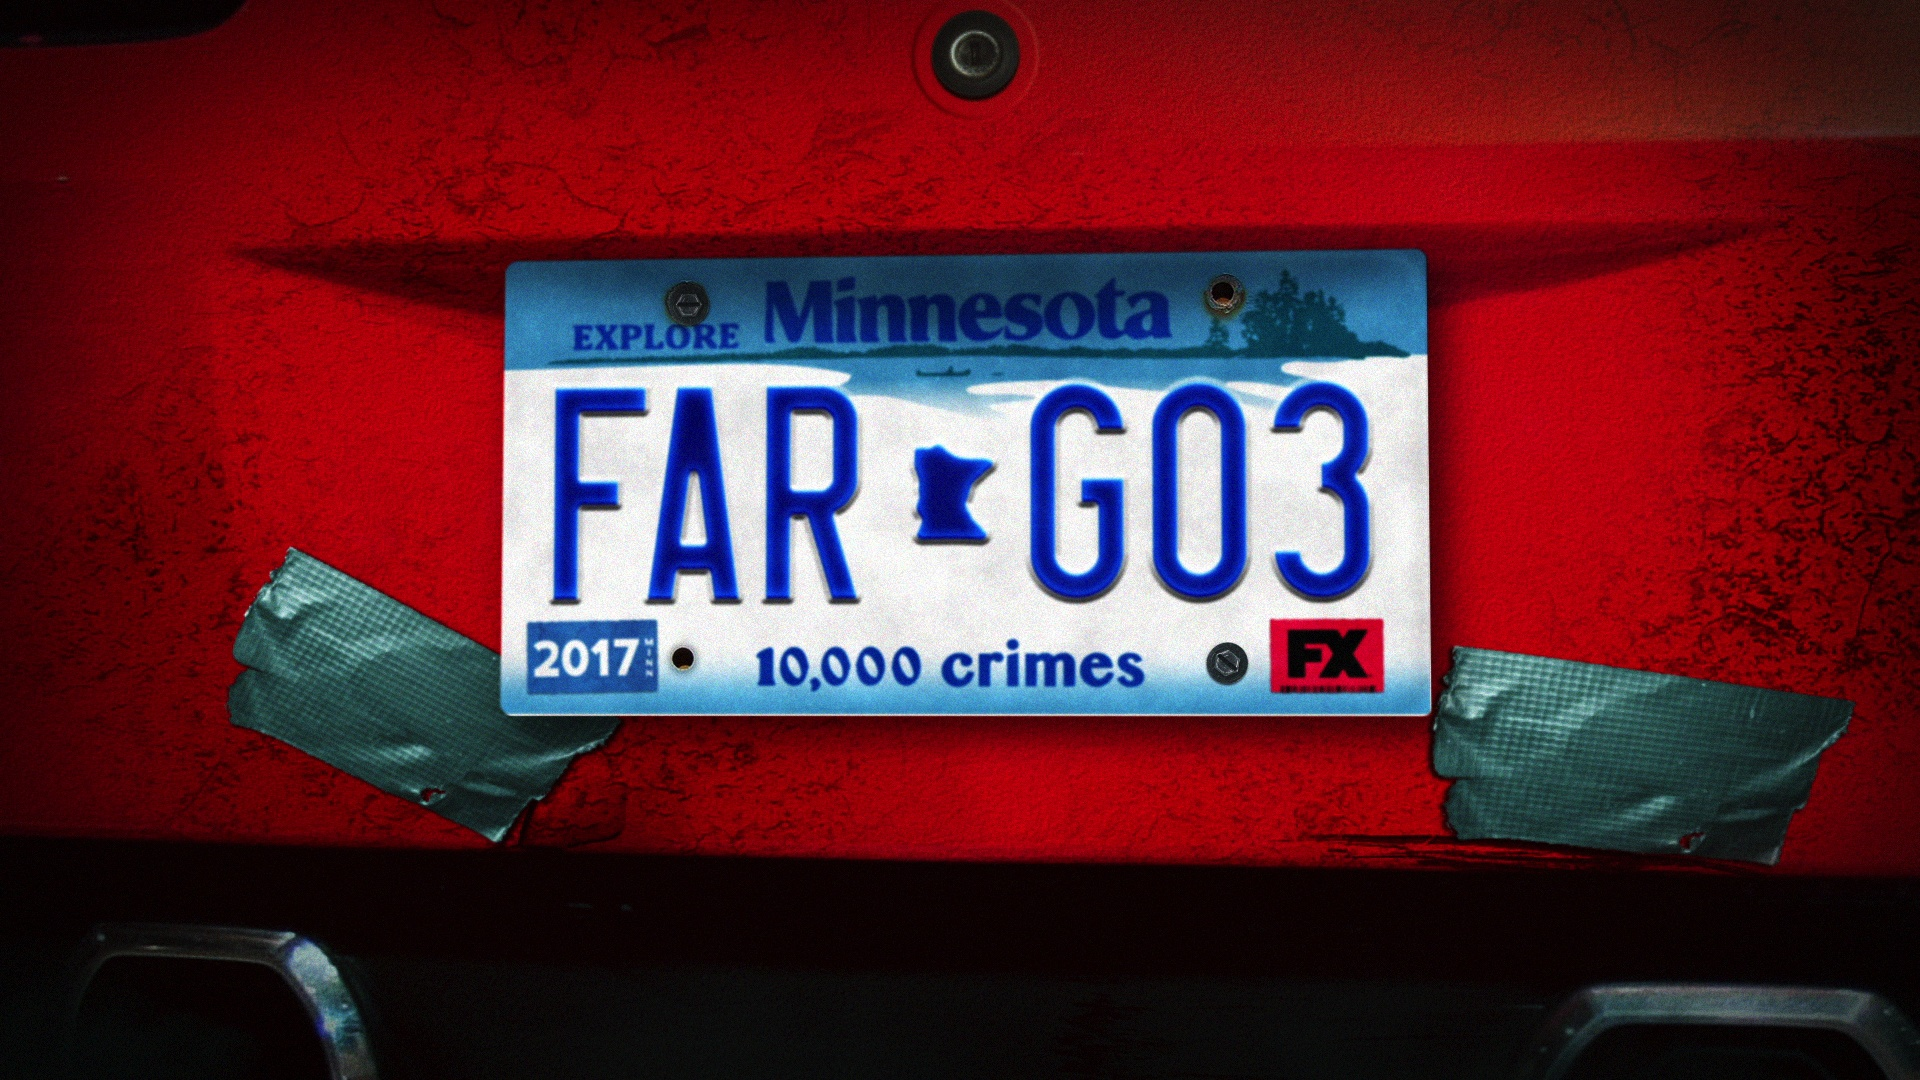 Thumbnail for License Plate